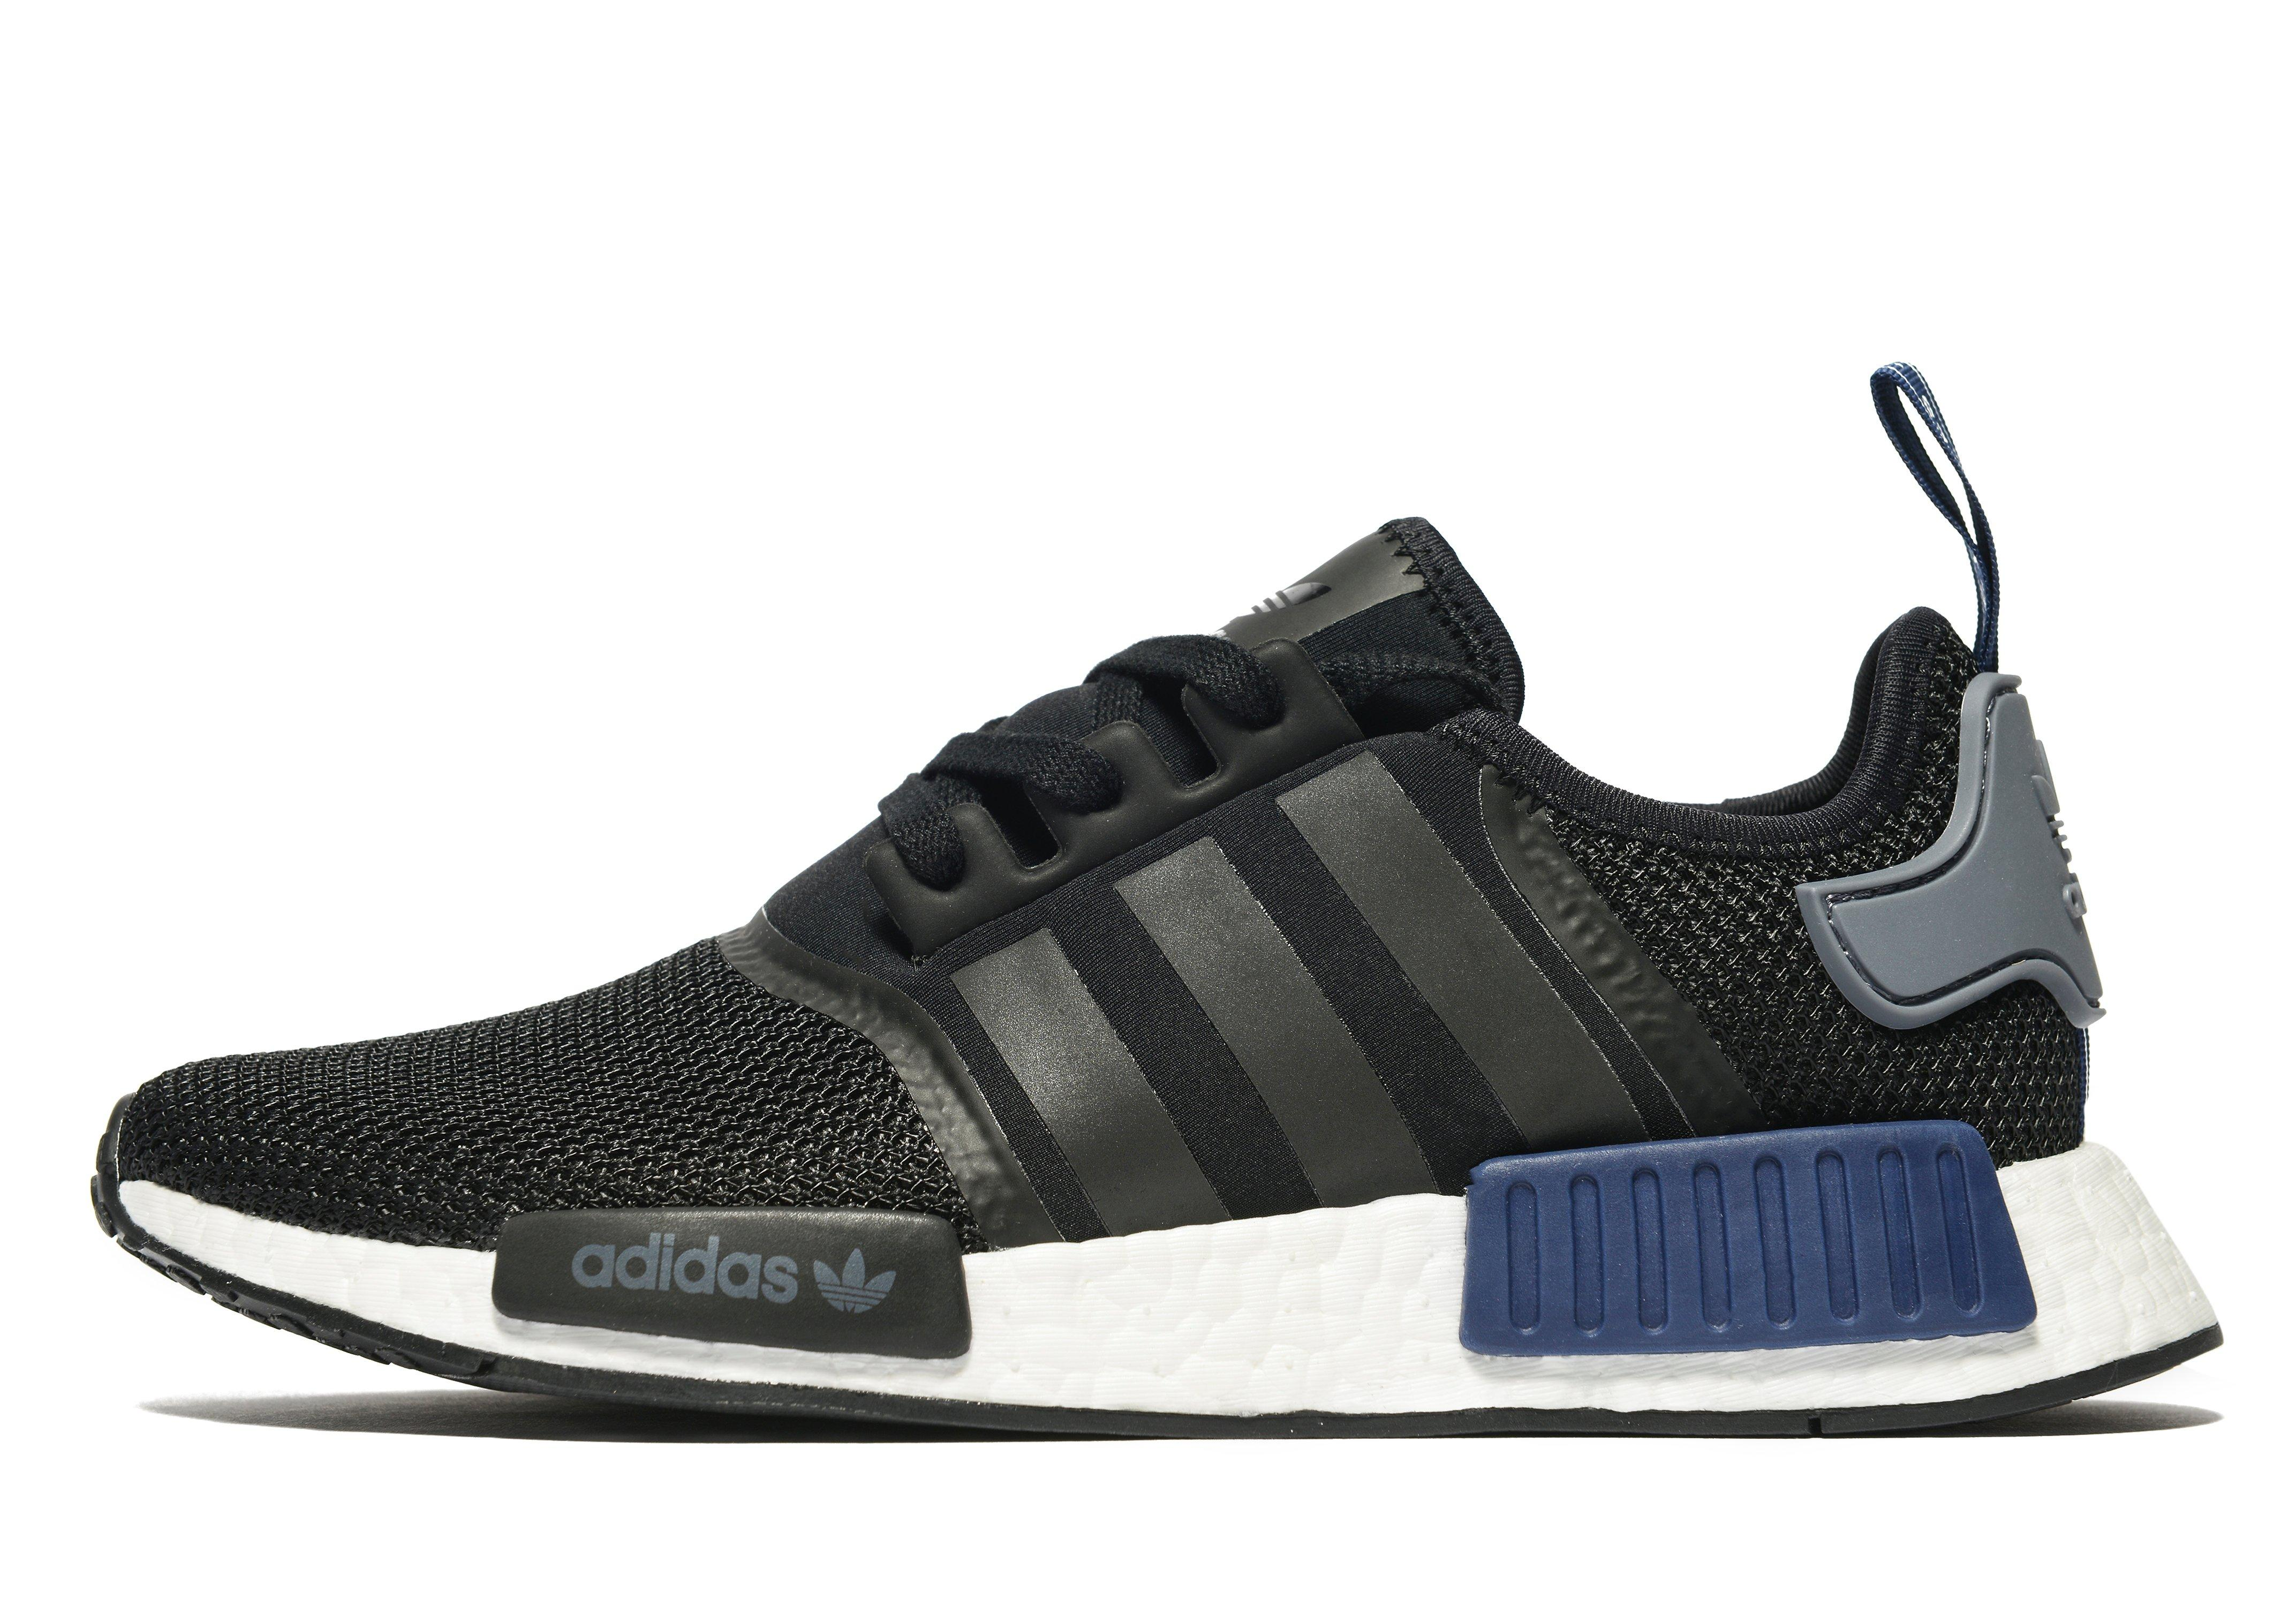 sale retailer 4d4c1 ced8a adidas mens nmd r1 running shoes adidas nmd r1 womens grey and pink